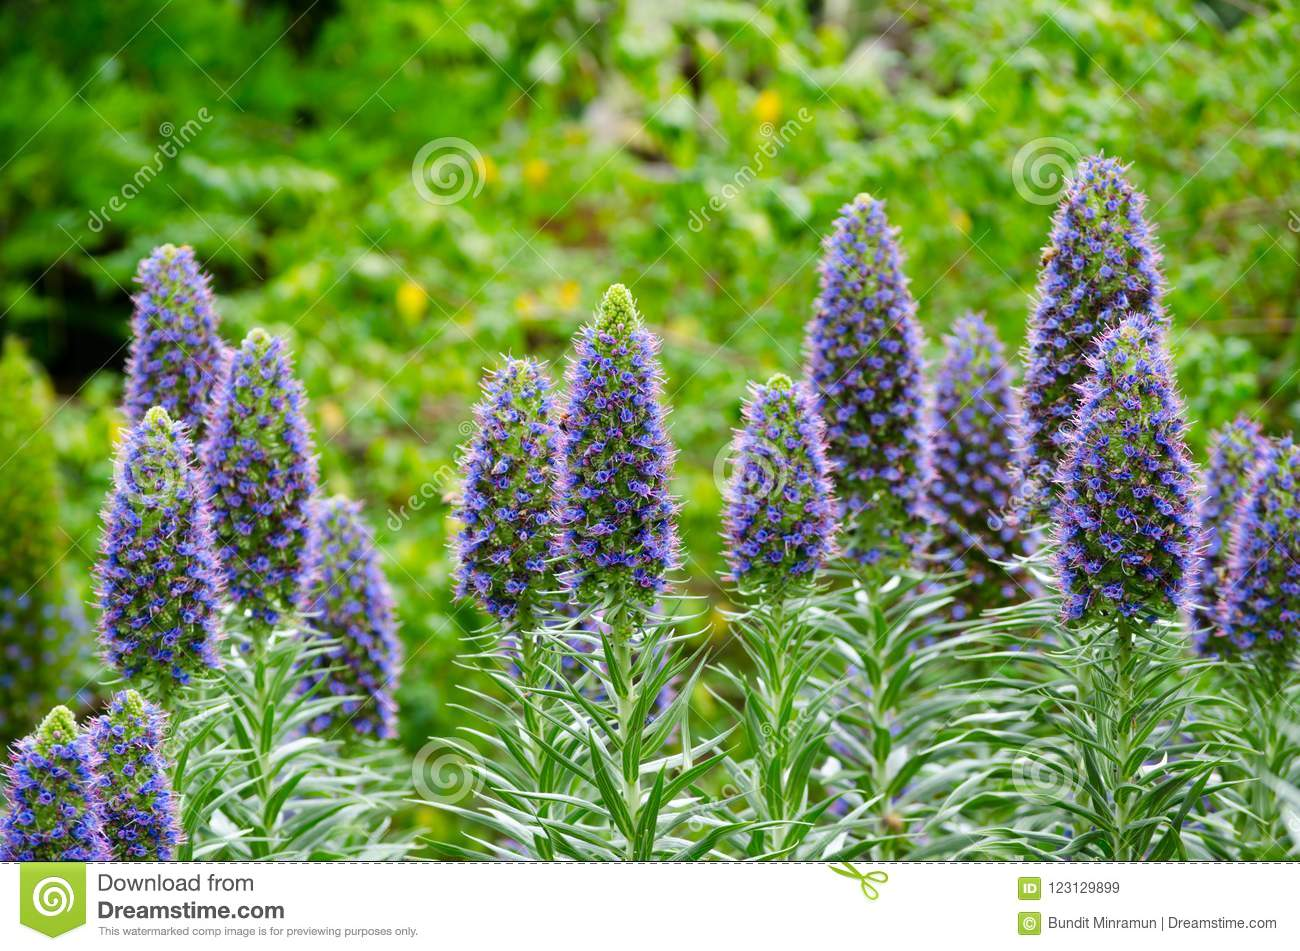 Puffy Lavender Purple Color Flowers At A Botanic Garden In Spring